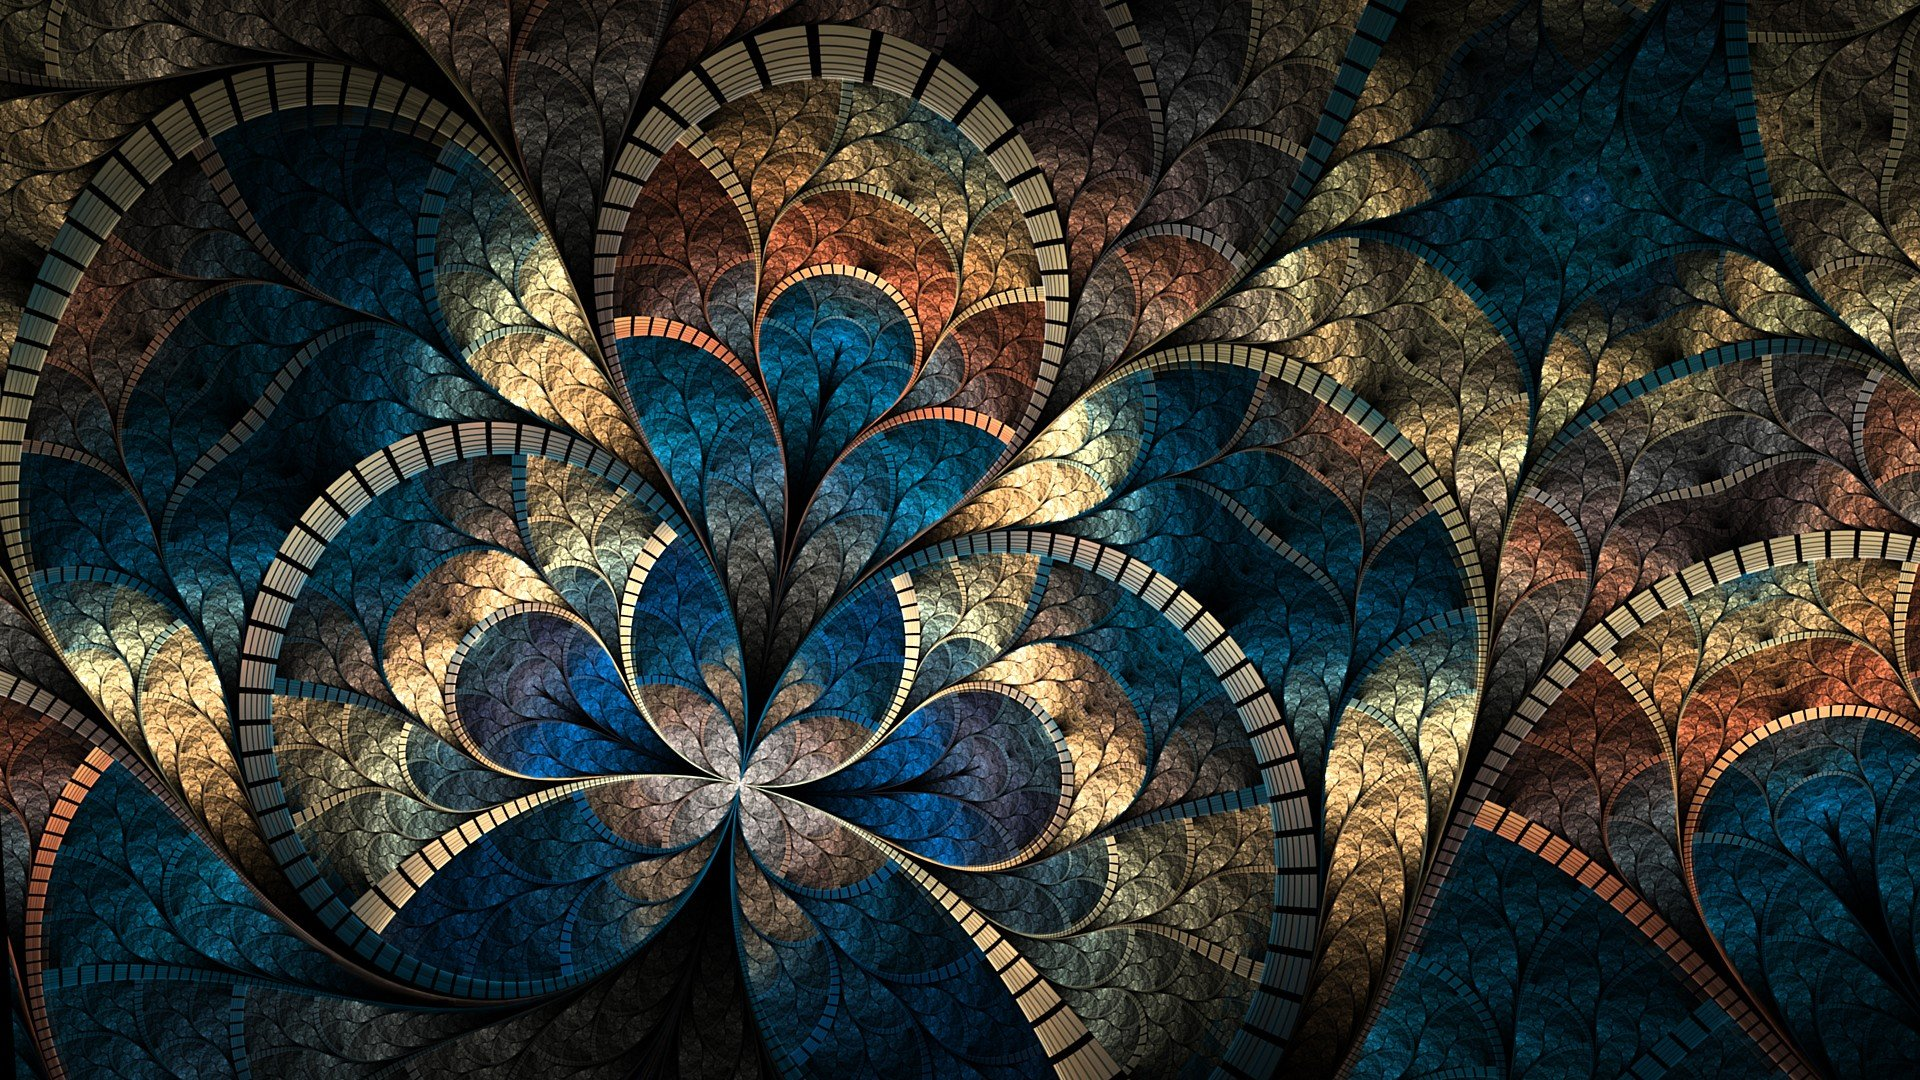 Fractal Wallpaper 1920x1080  WallpaperSafari